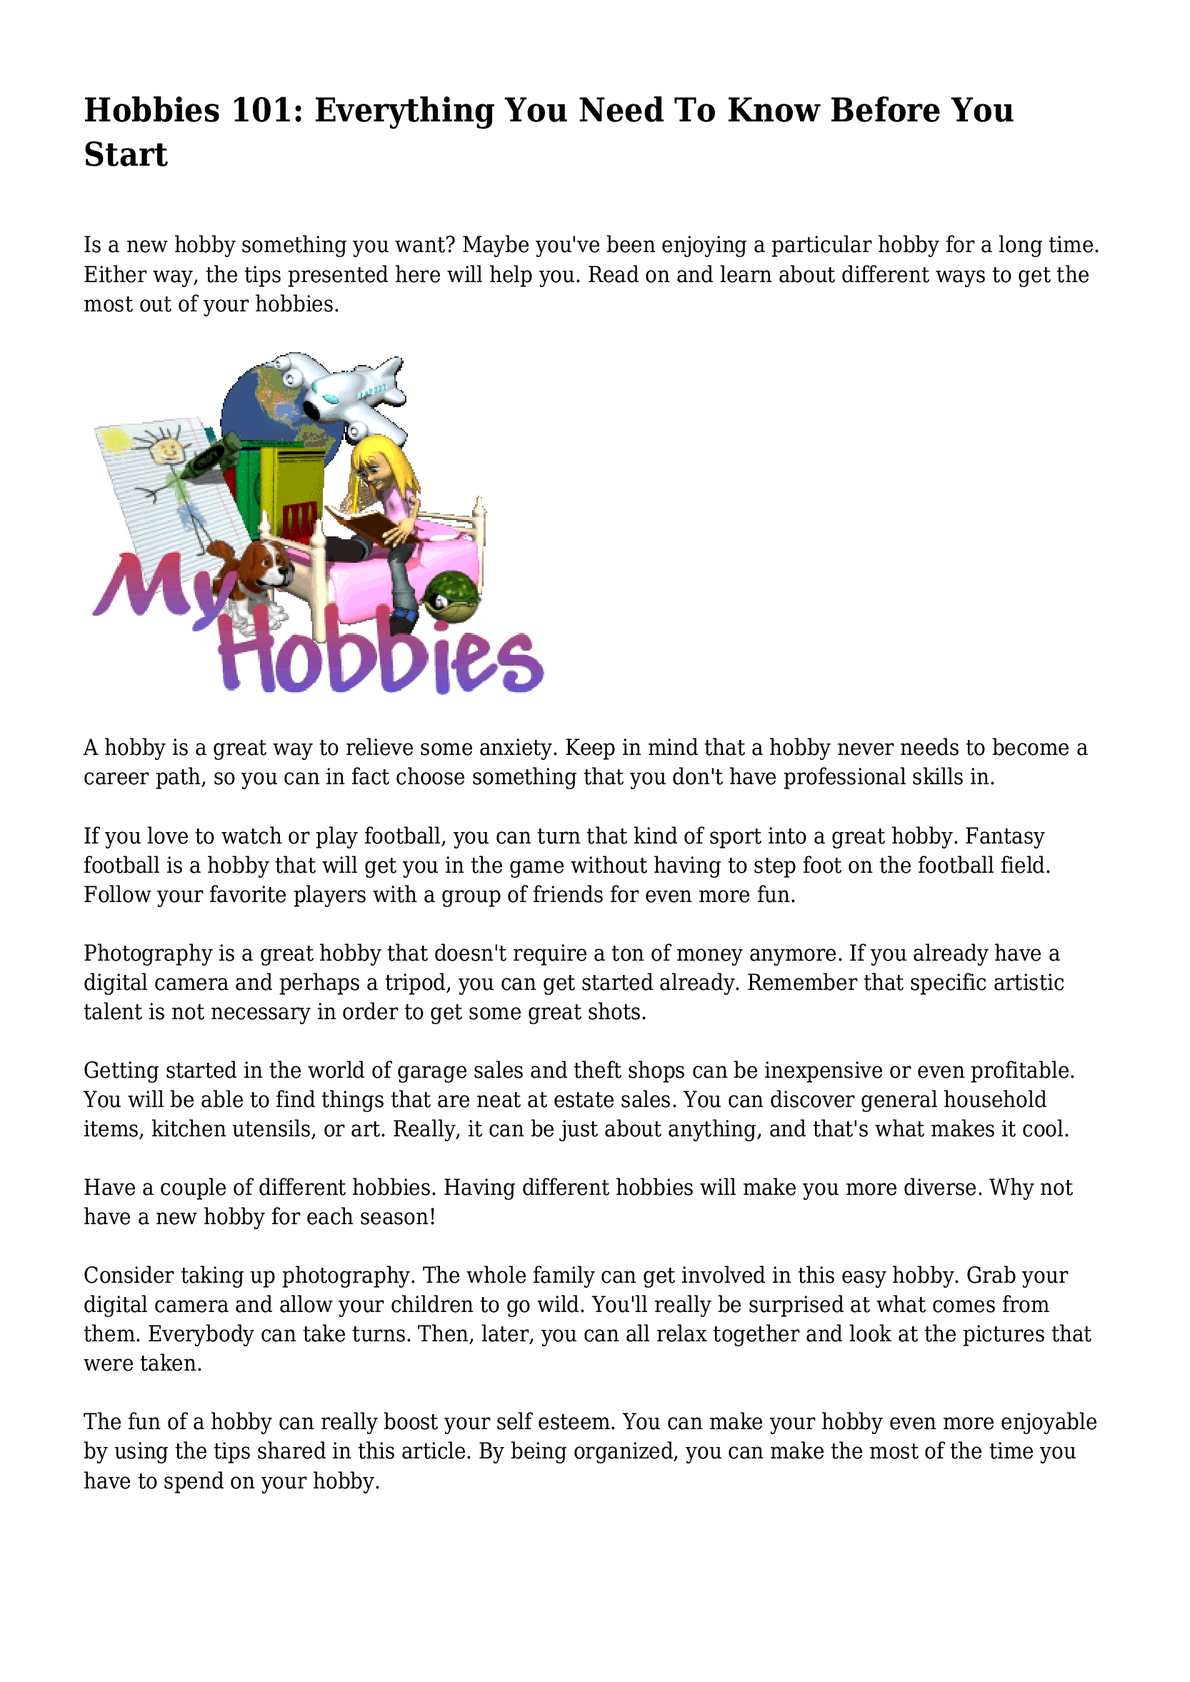 How to choose a hobby - useful tips